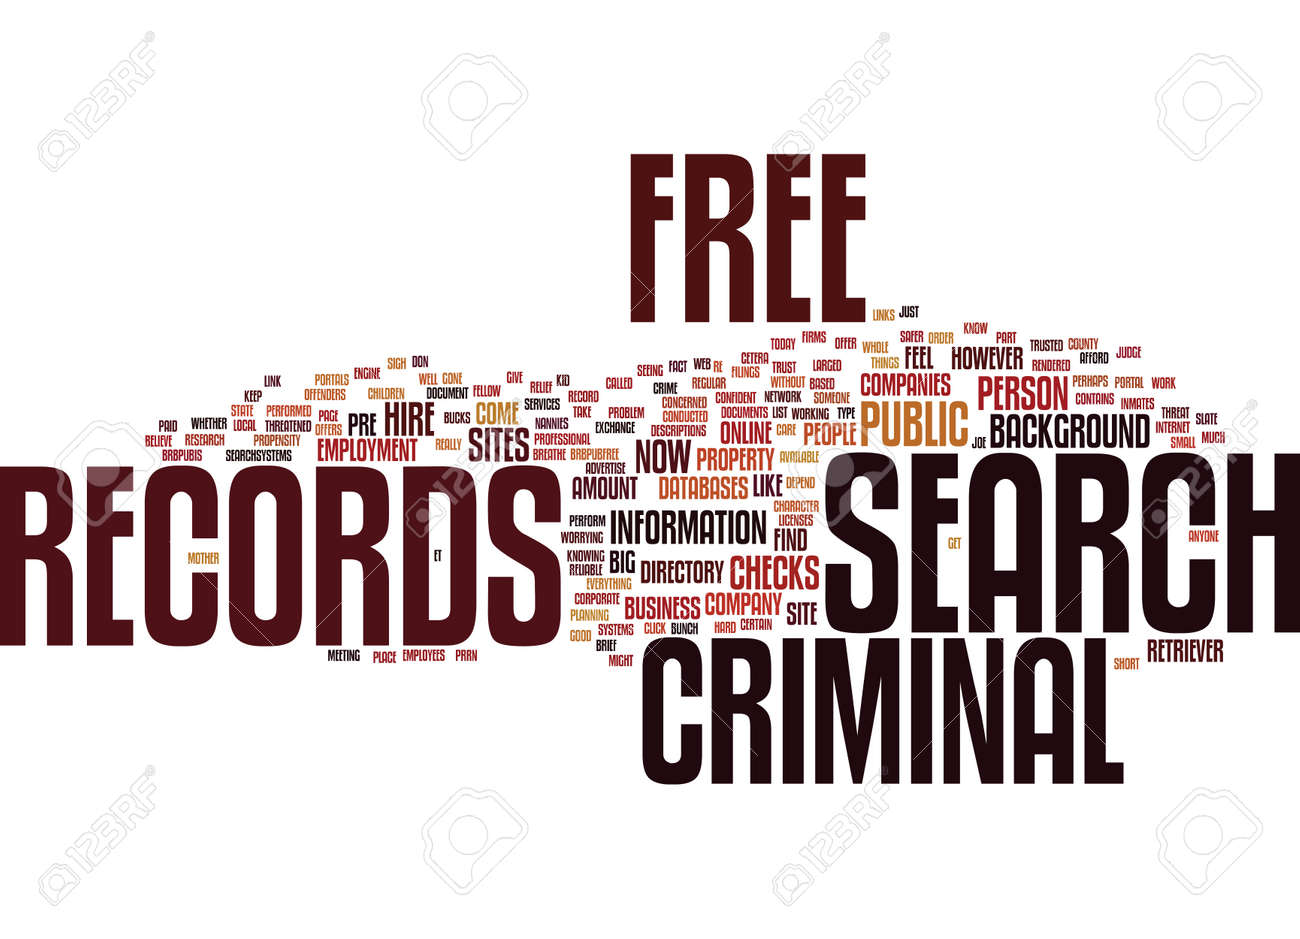 Criminal Records Search Free >> Free Criminal Records Search Text Background Word Cloud Concept